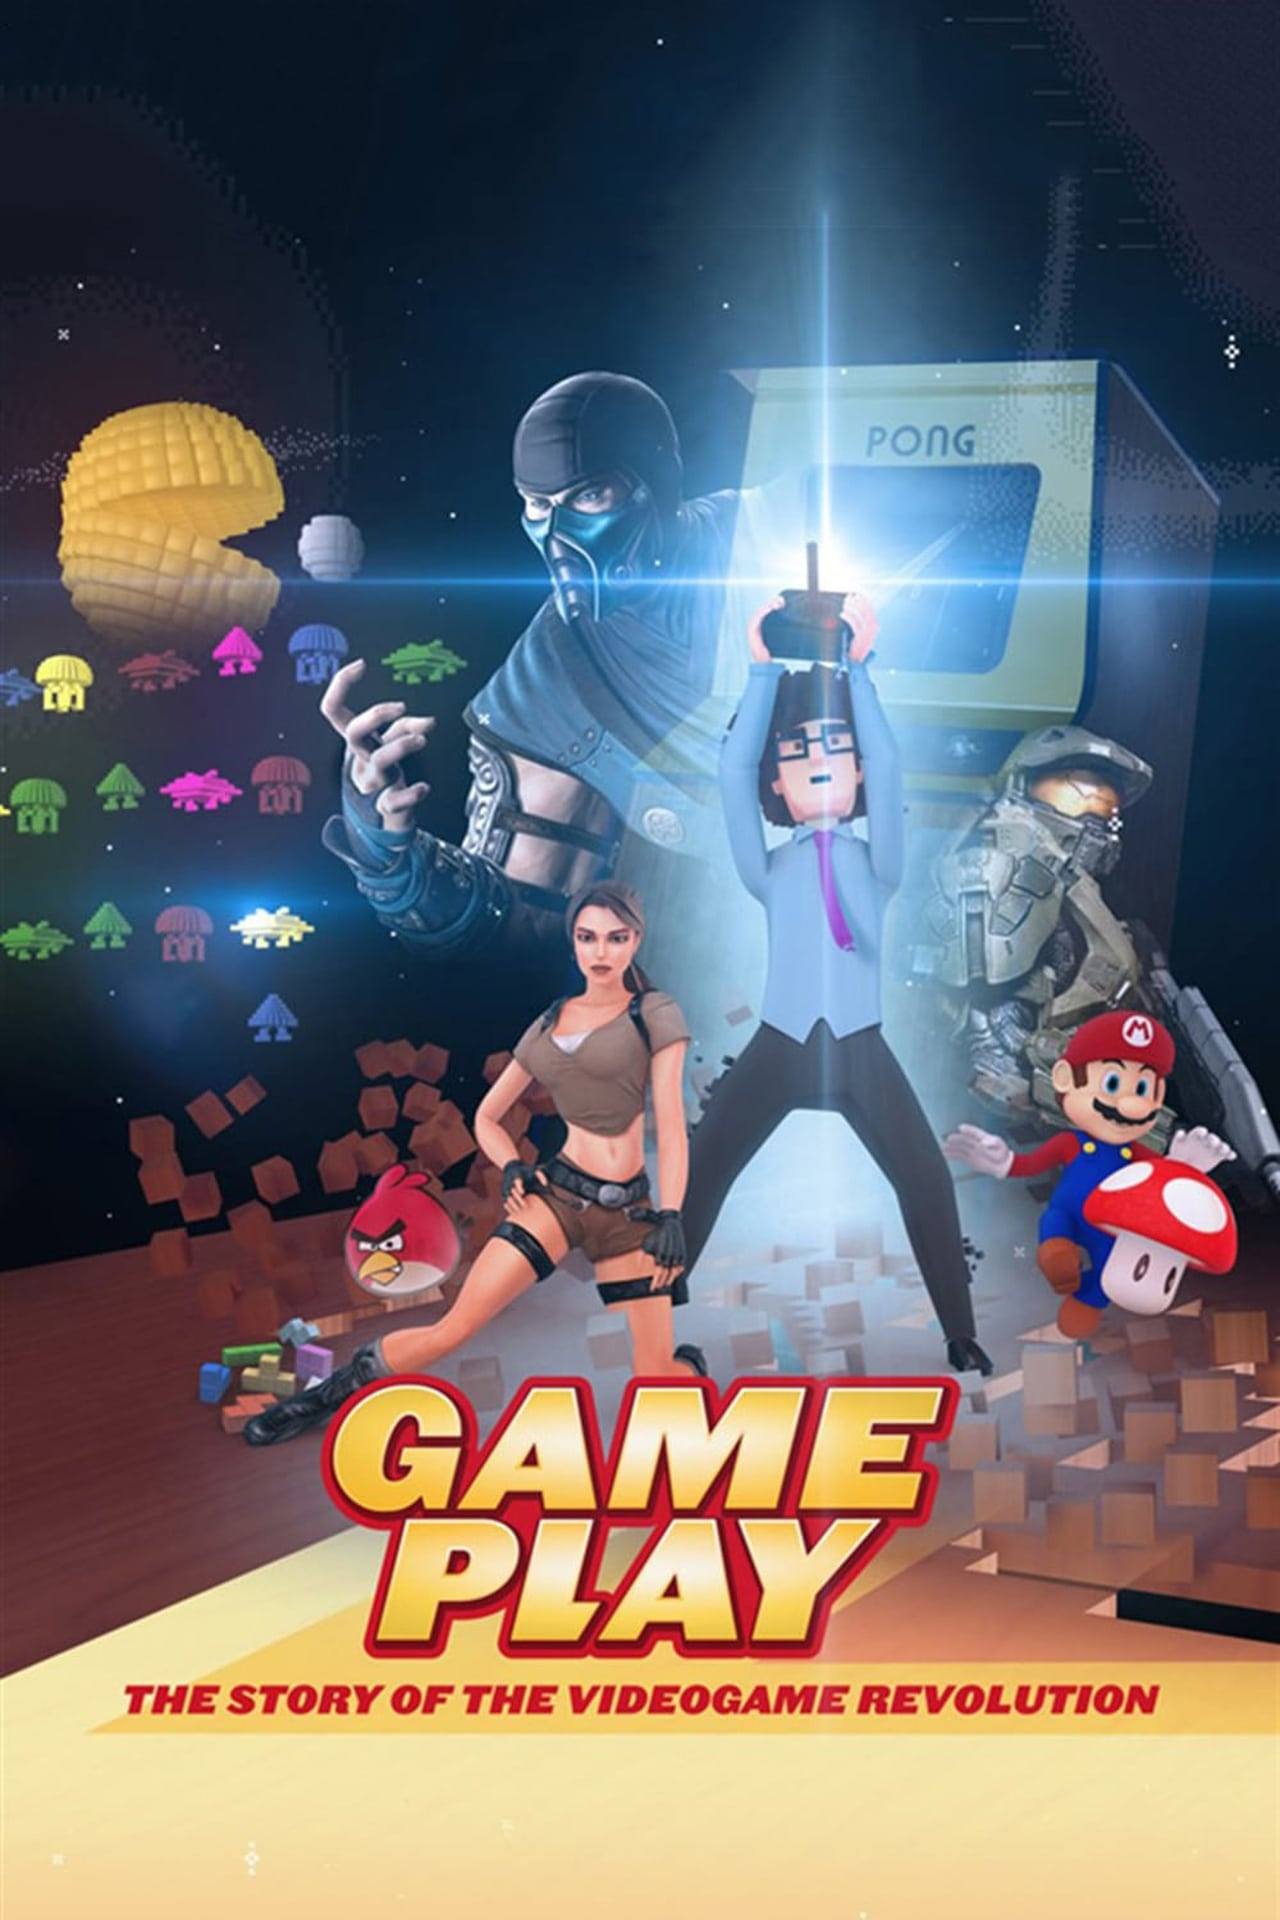 Gameplay: The Story of the Videogame Revolution